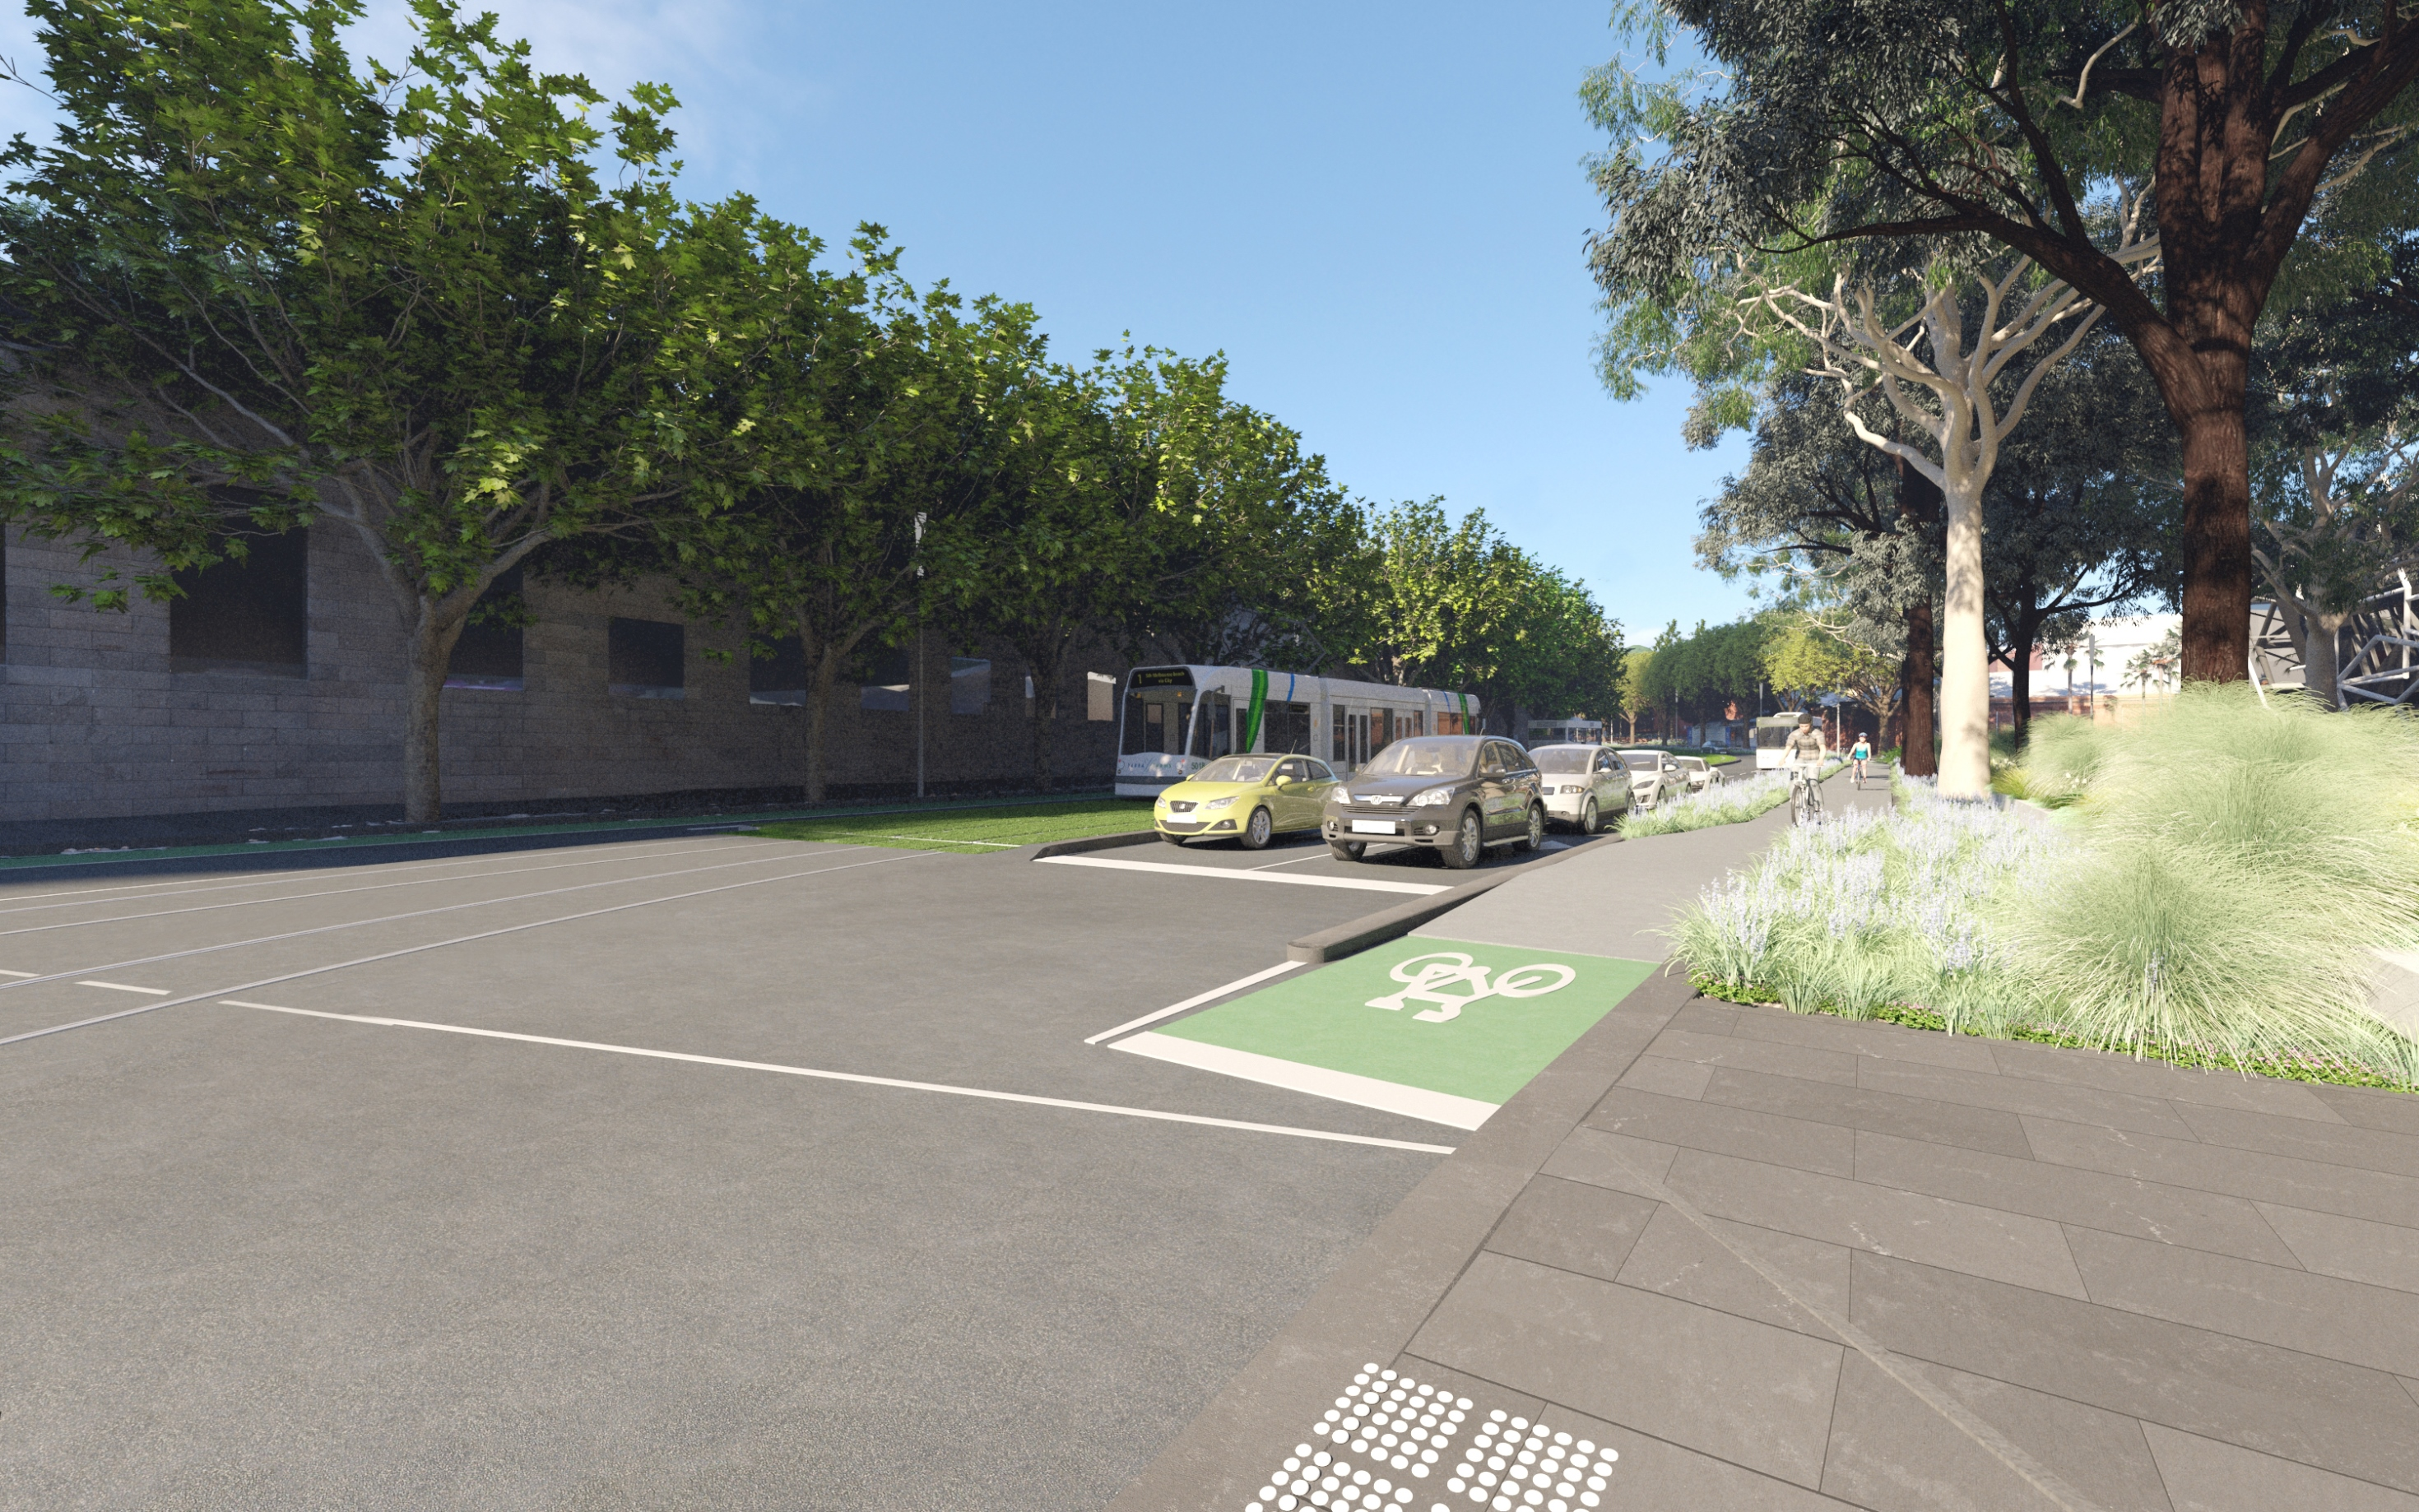 New bike lanes and biodiversity from Sturt Street to St Kilda Road